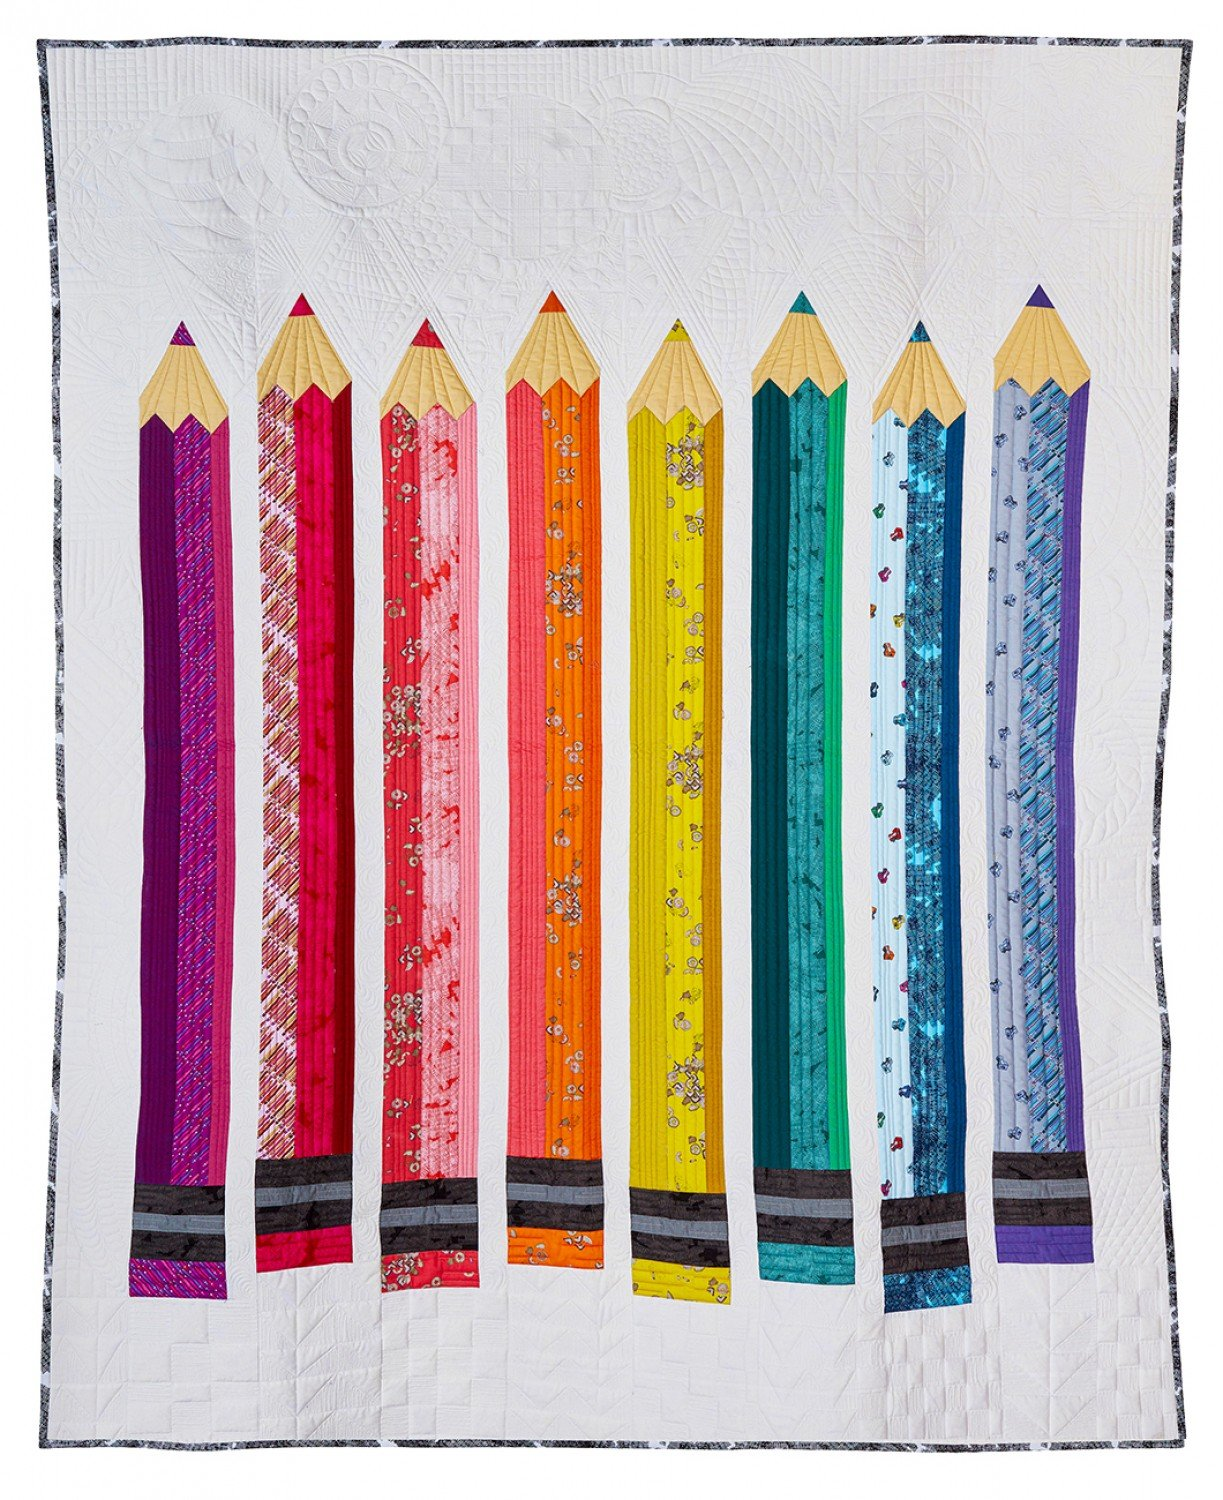 Windham Fabrics Pencil Club by Heather Givans 50783QK Pencil Club President Quilt Kit $193.00/per kit